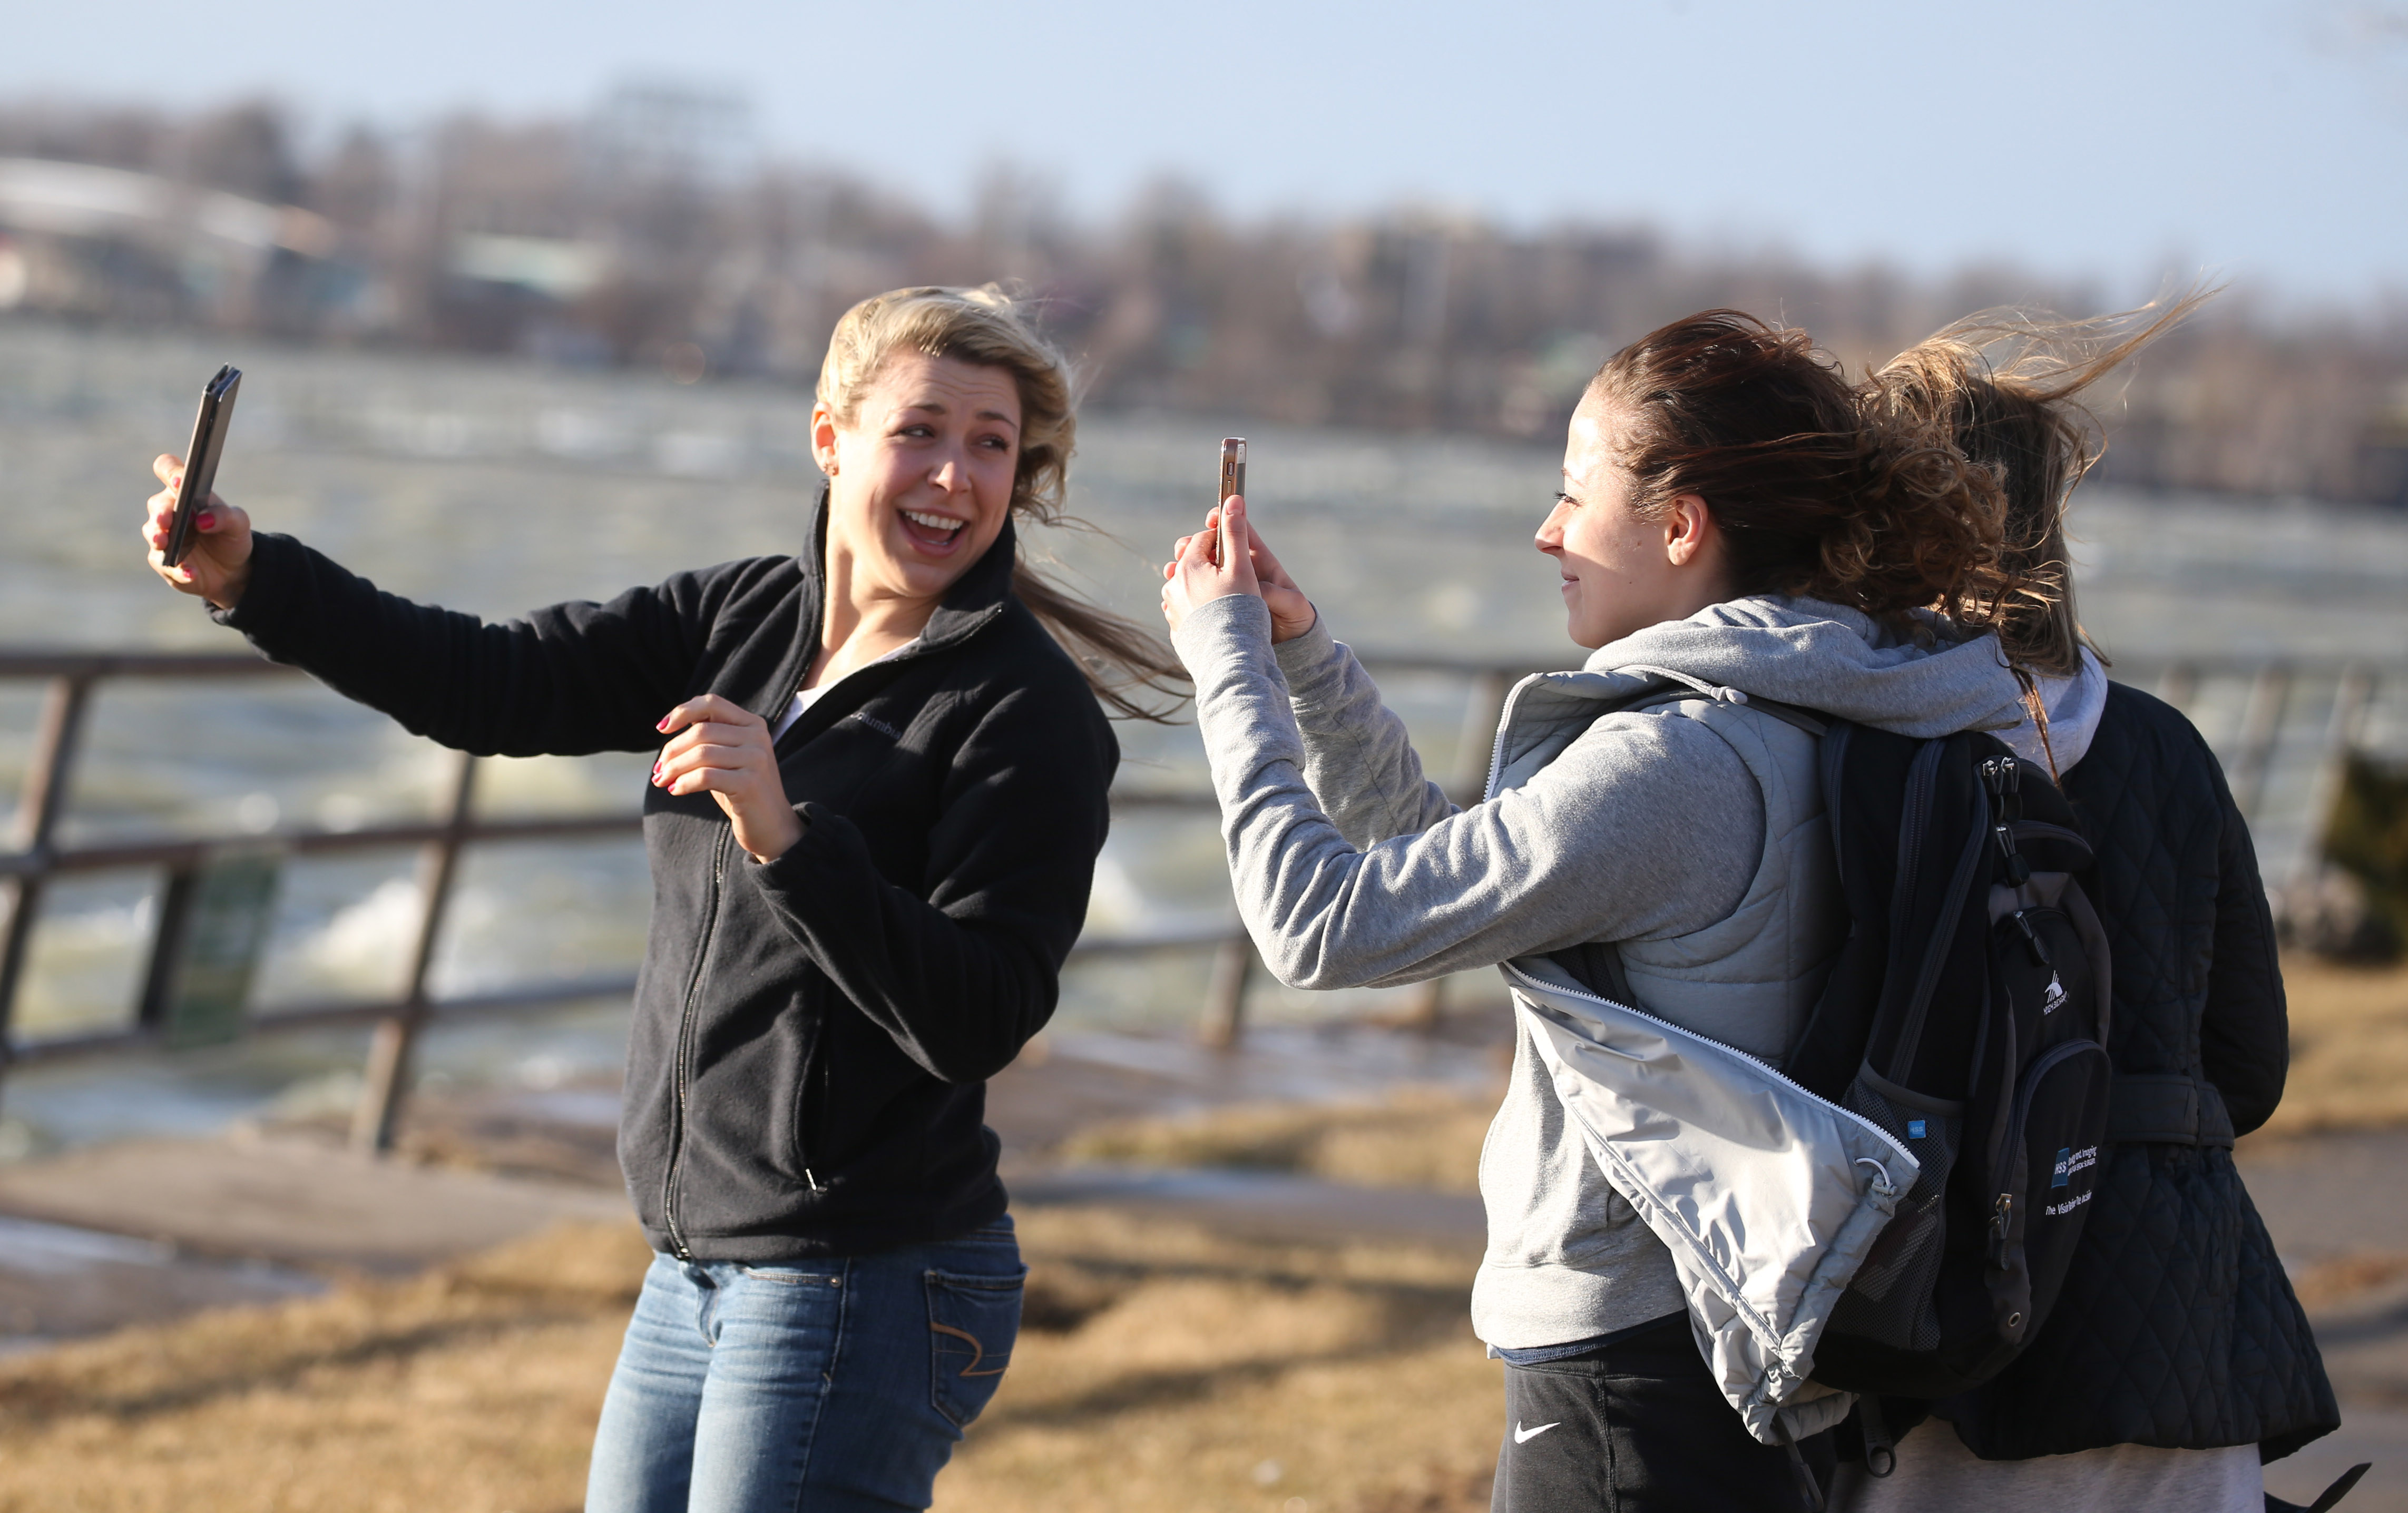 If it's warm weather you want, you should be hoping for downslope winds to blow in. Here, D'Youville students Catherine Cotrupe, Esada Kucevie and Amy Liszewski take pictures as a strong wind blows in off the lake at LaSalle Park on March 8.  (Sharon Cantillon/News file photo)